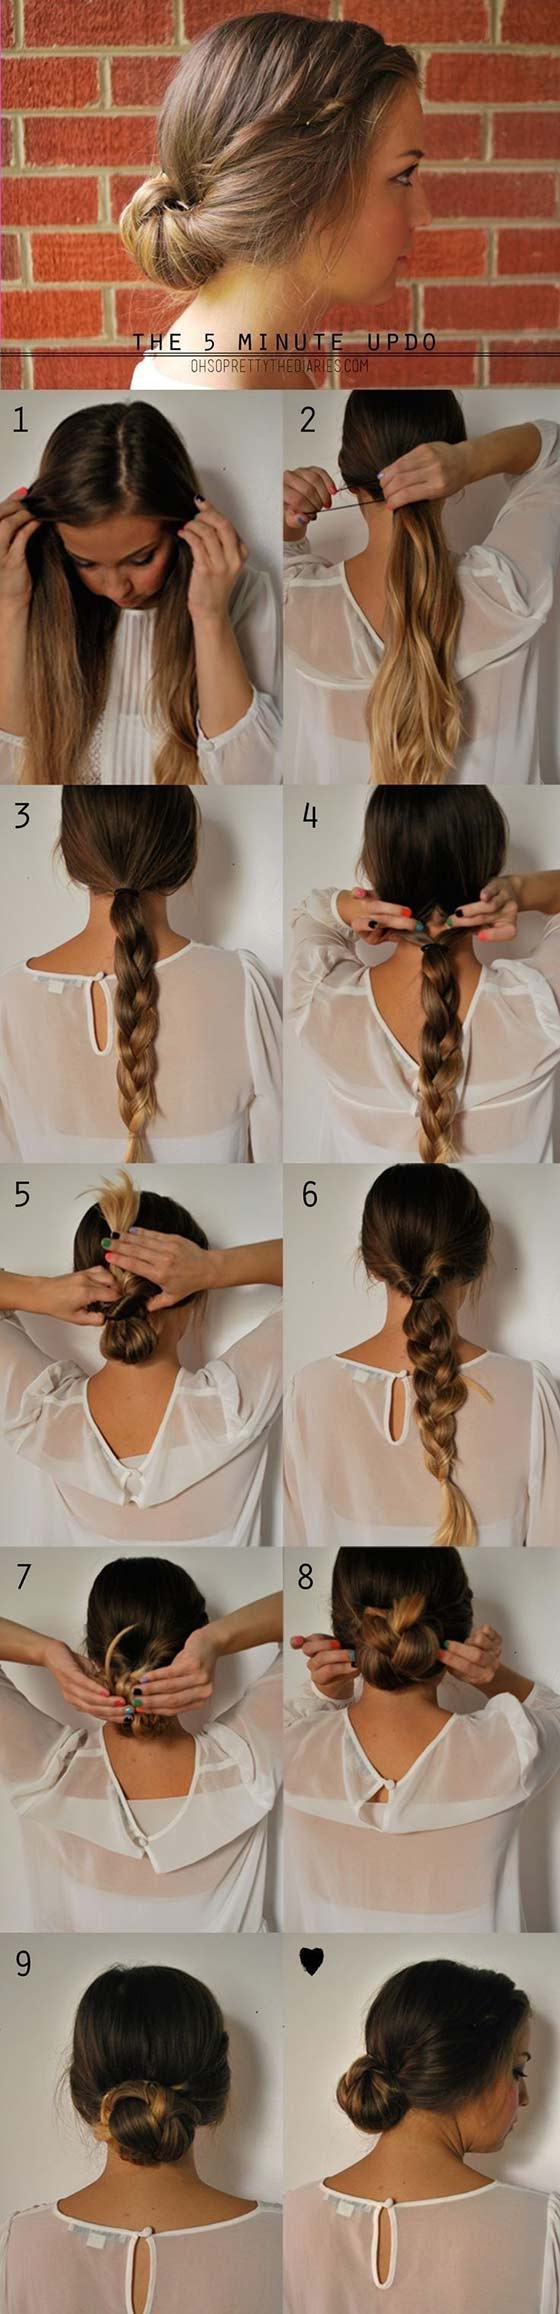 The-Braided-Hair-Updo